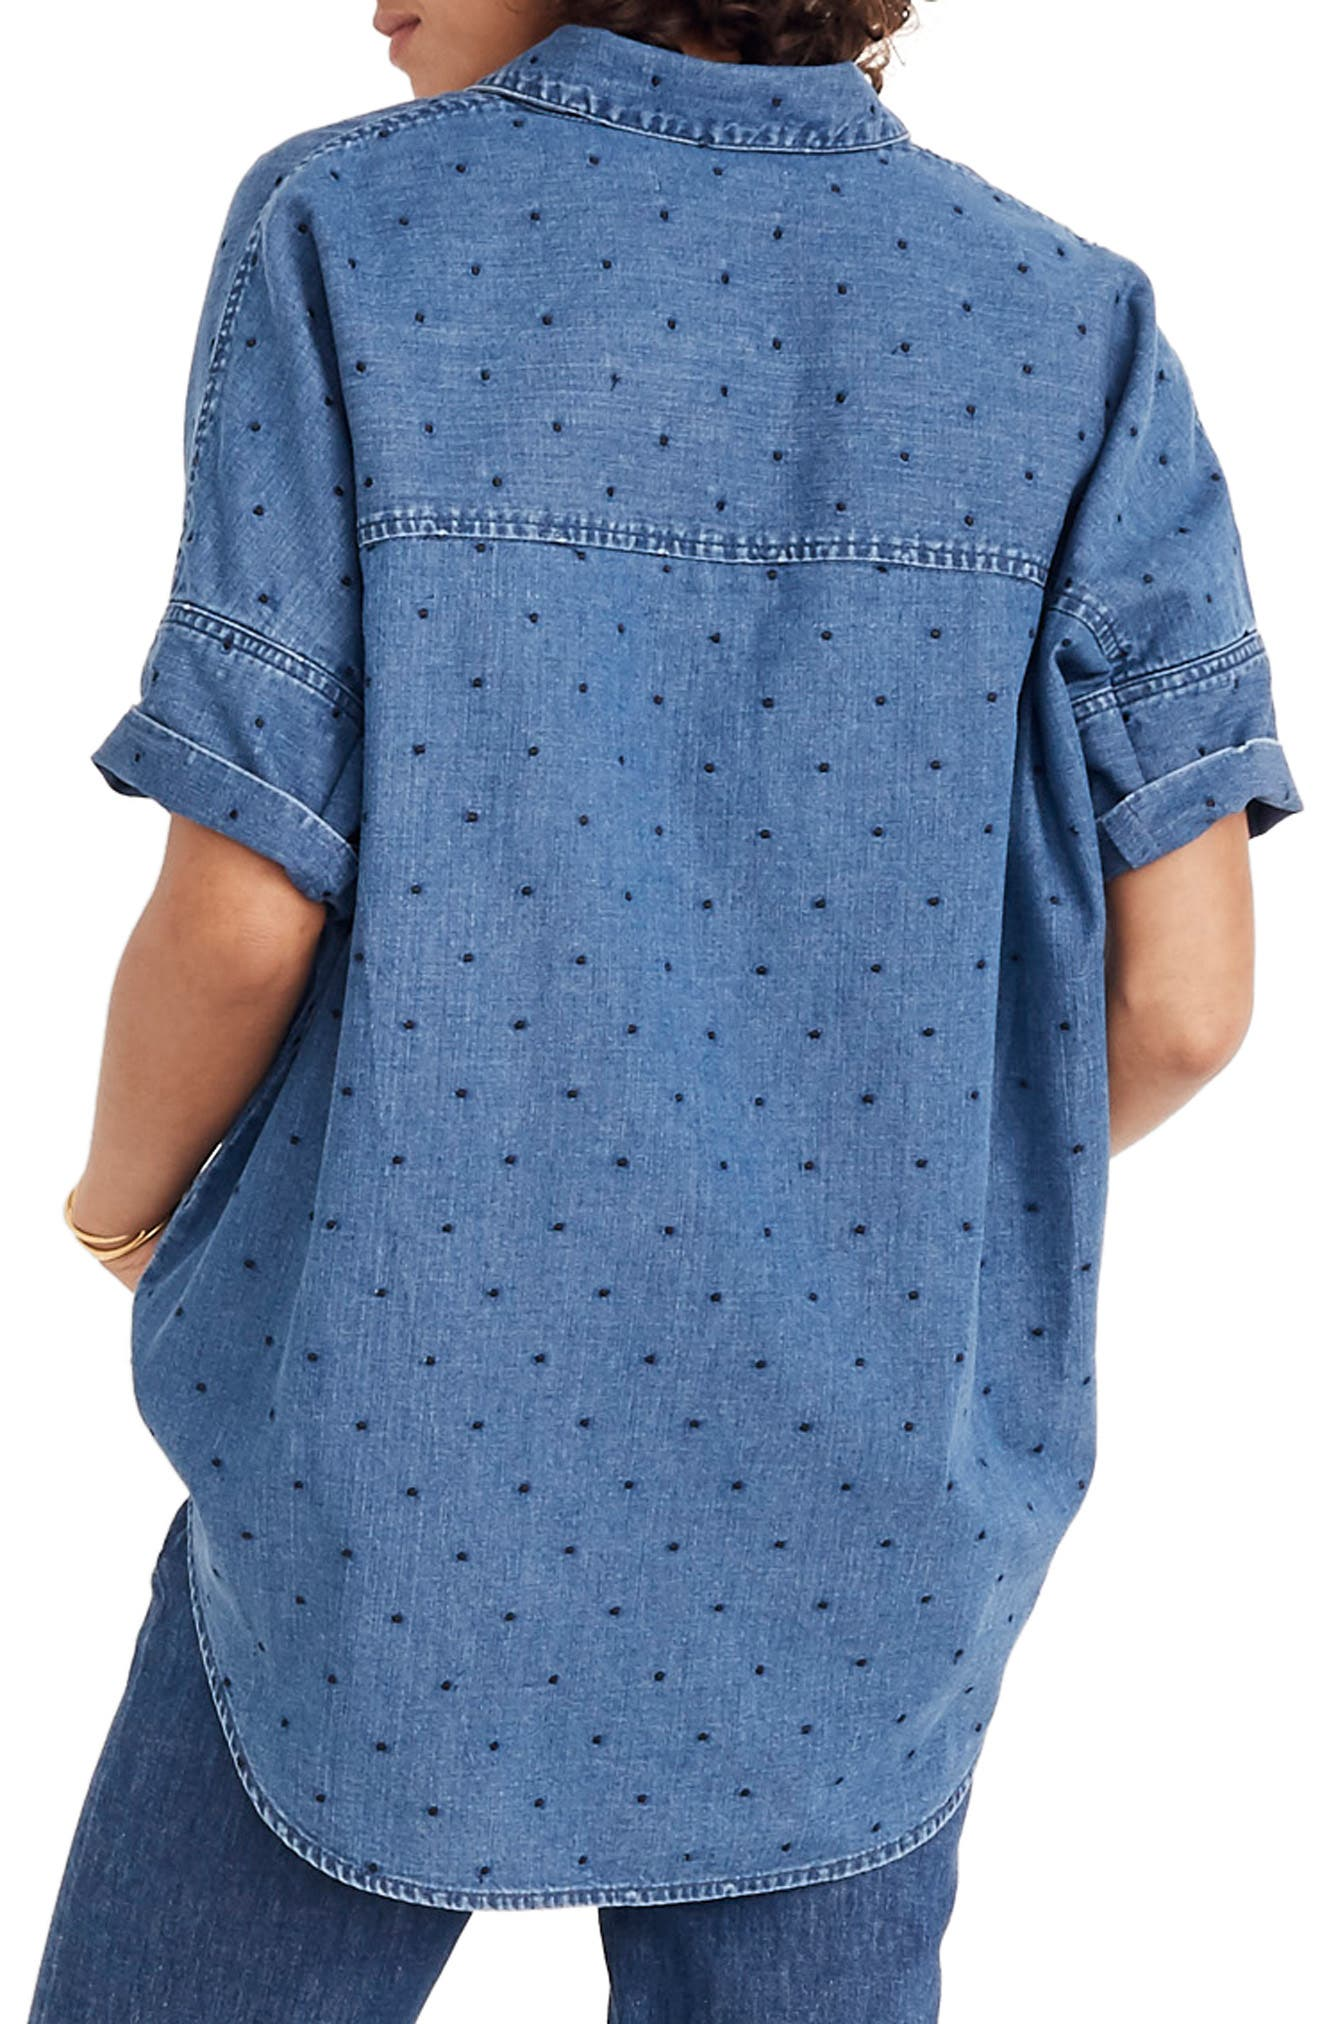 Courier Dobby Dot Shirt,                             Alternate thumbnail 2, color,                             GOODLET WASH